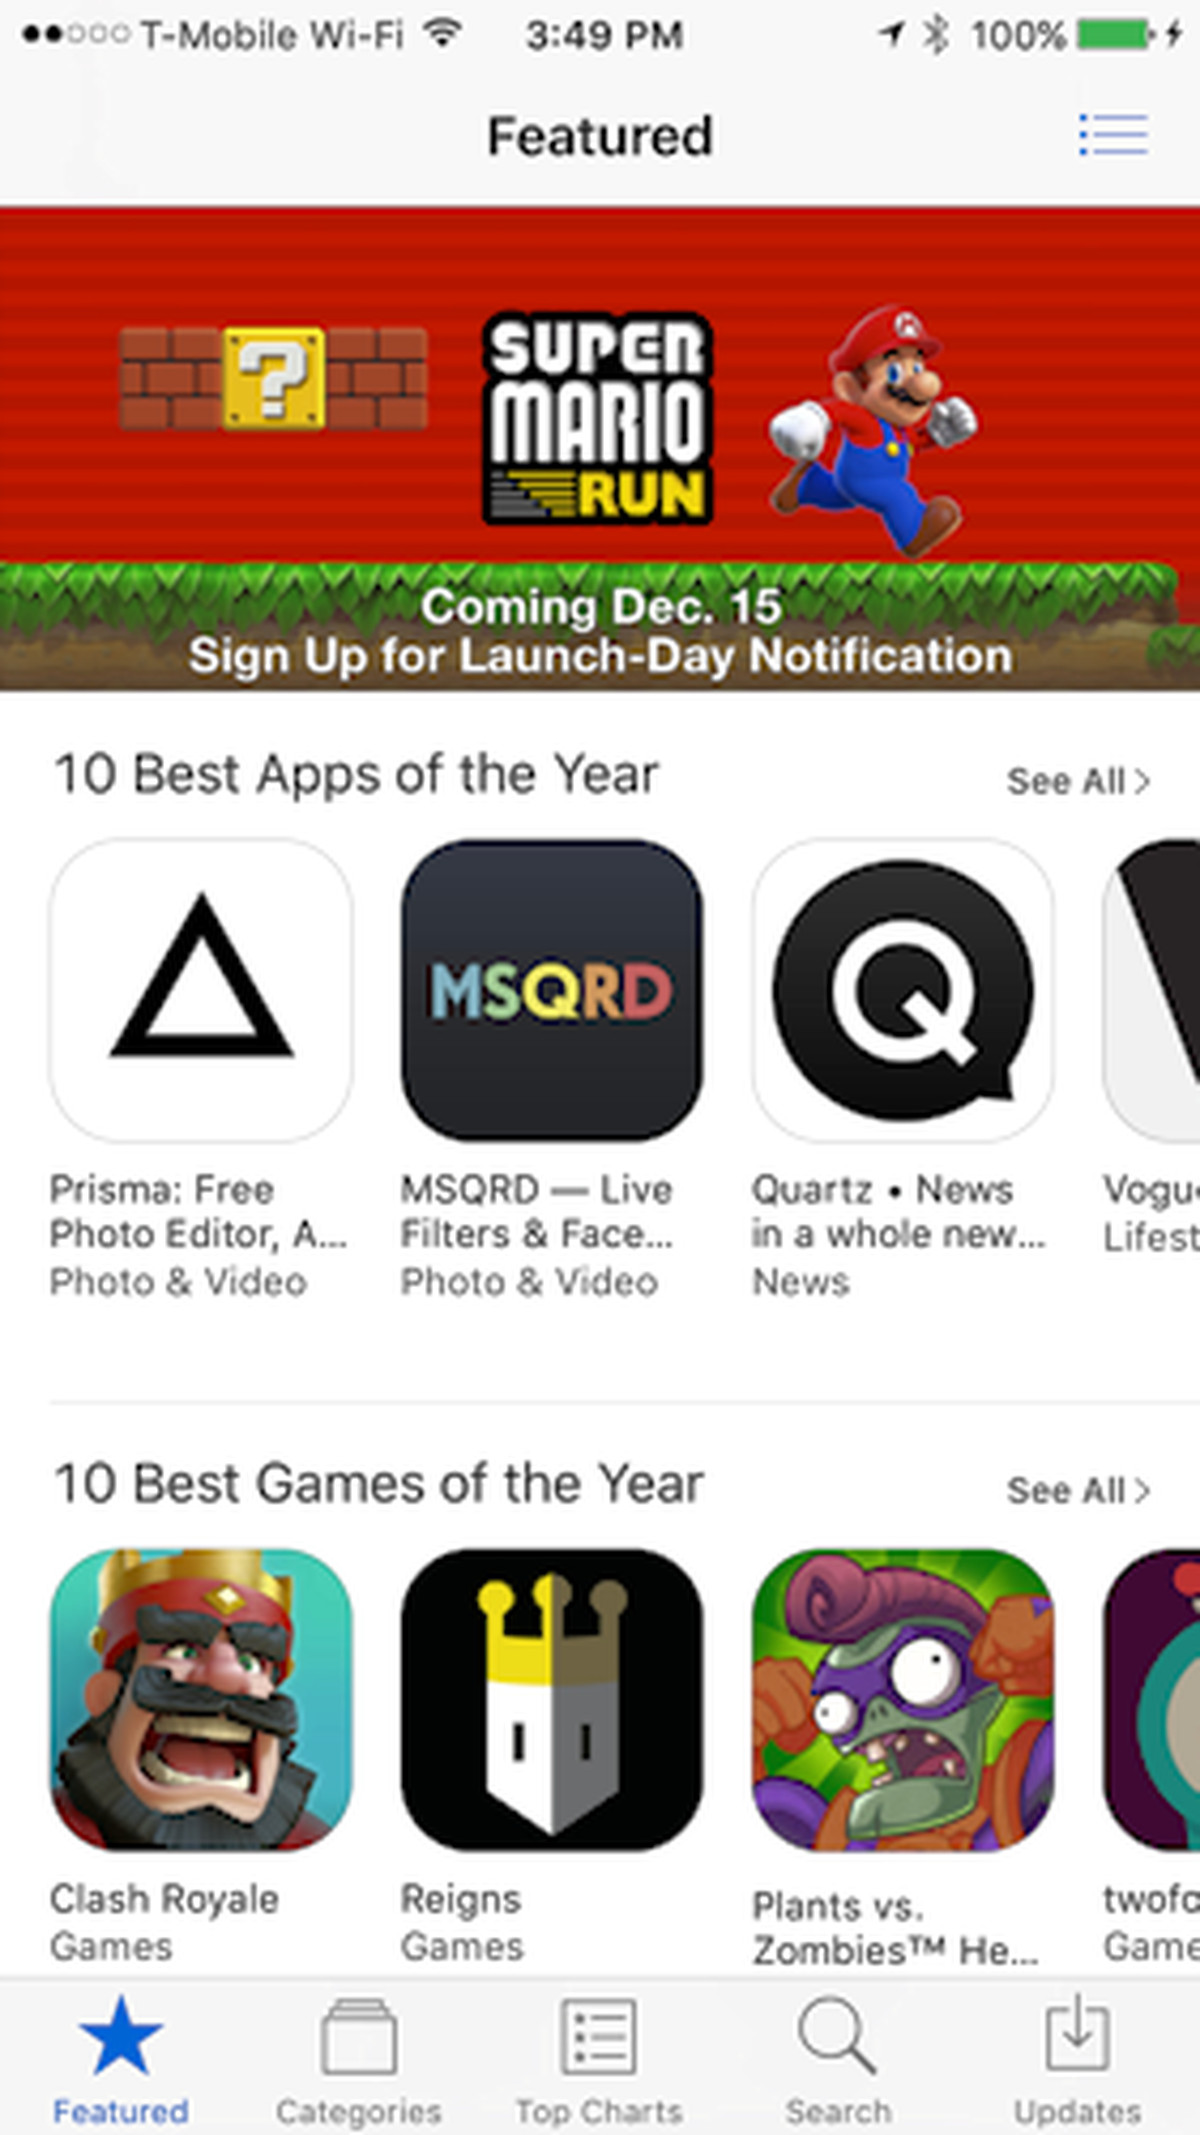 Apple is promoting the heck out of its Super Mario Run exclusive, which launches tomorrow